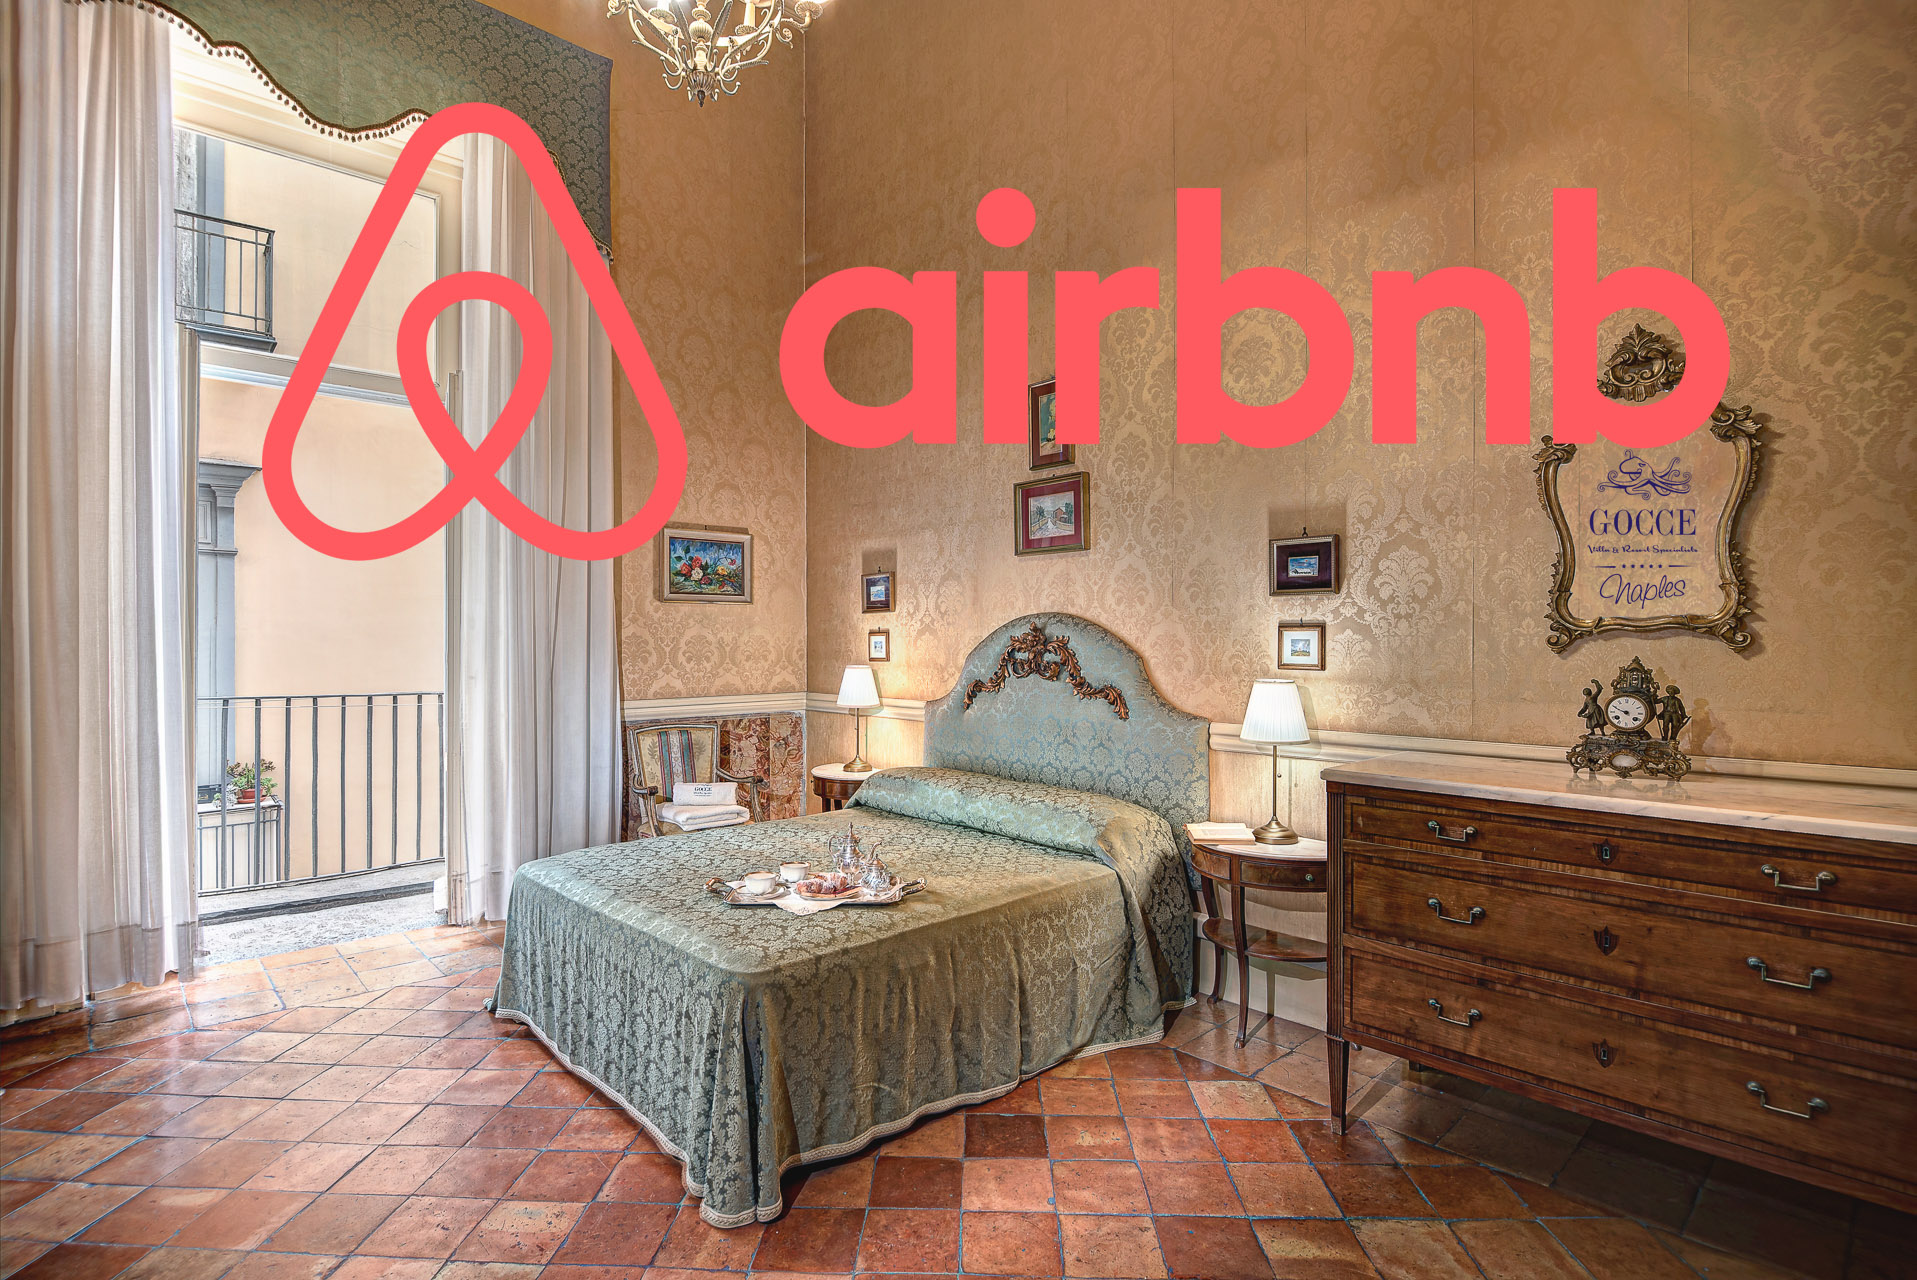 Airbnb and the tourist tax